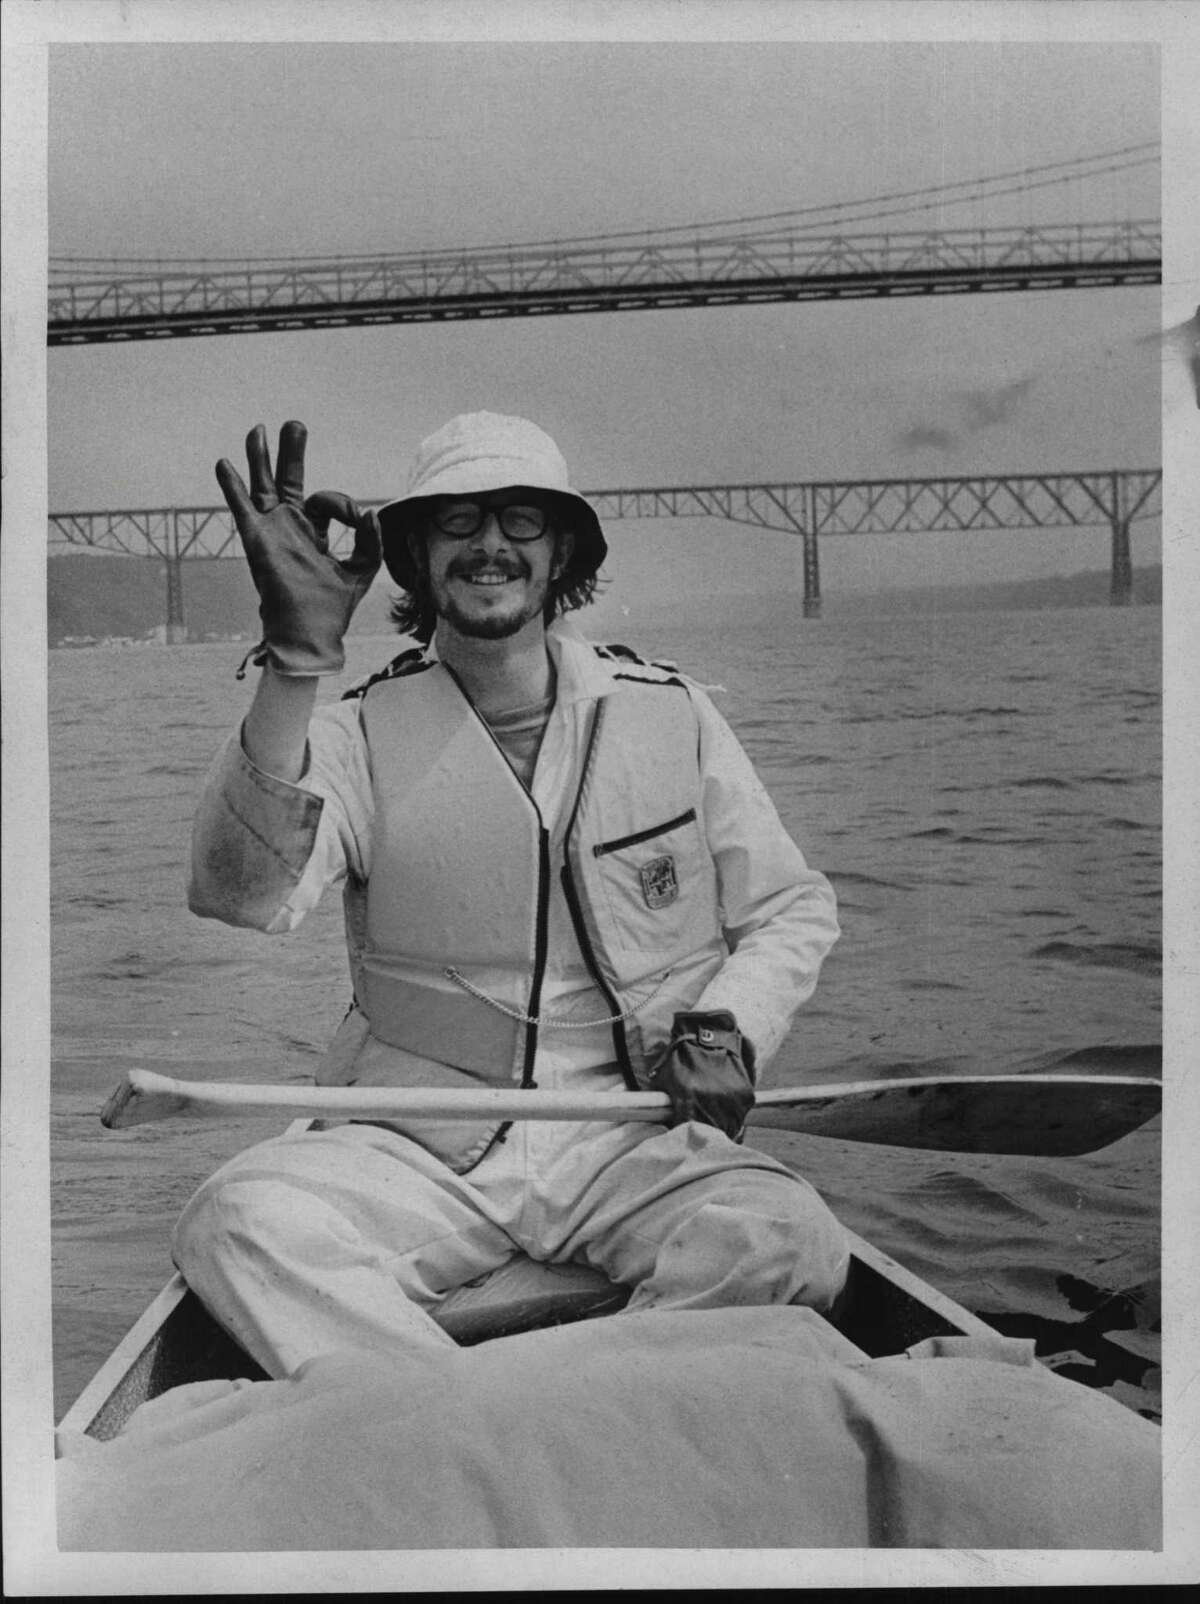 Joe Higgins photographed Mickey Palmer wearing a smile of confidence as he passed under the Poughkeepsie-Highland Bridge. The Hudsonauts were halfway to New York. 1970 (Times Union Archive)